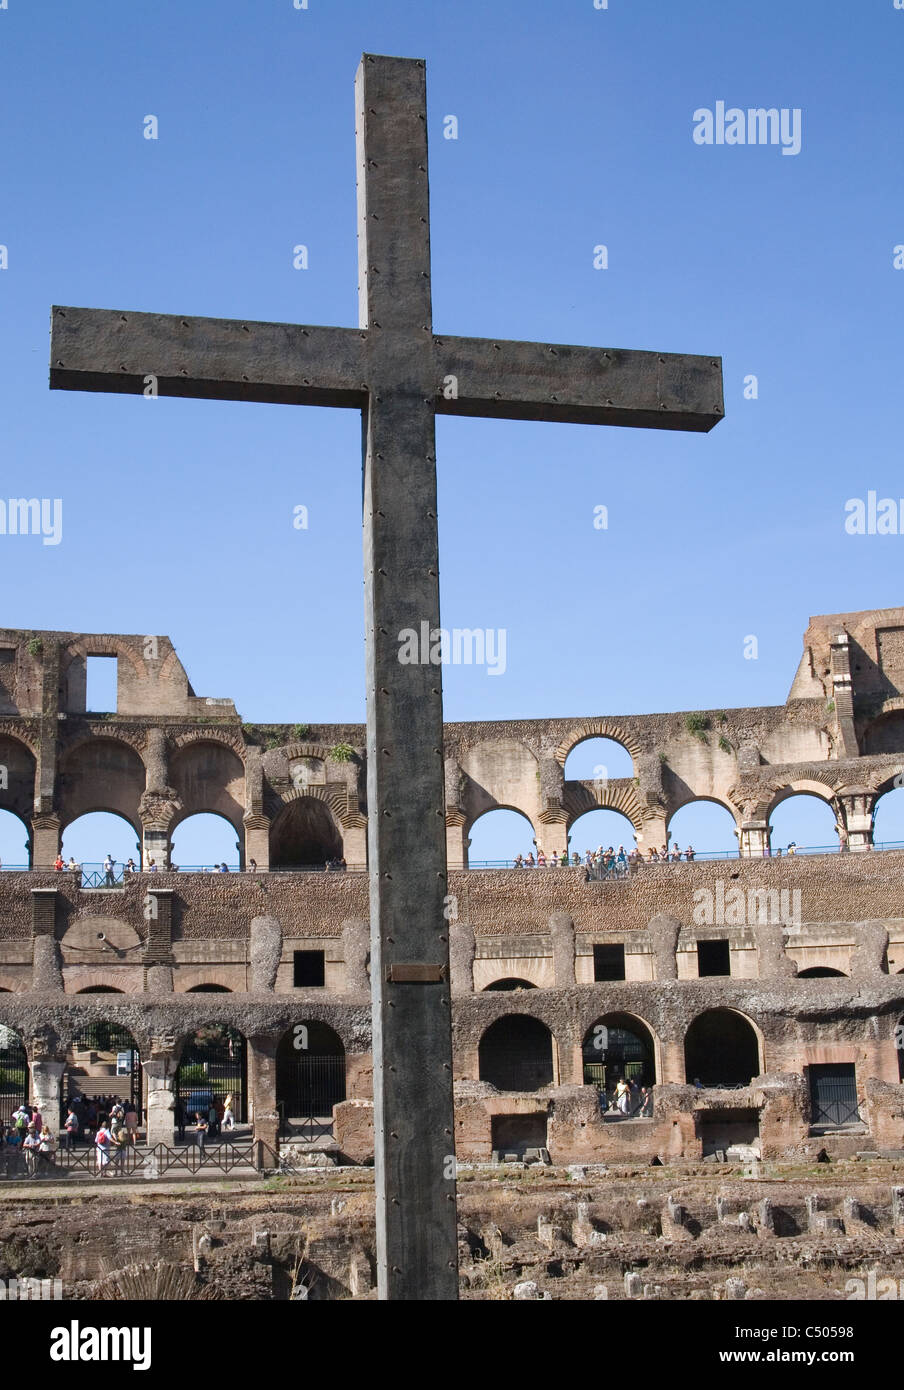 cross in the ancient colosseum Rome italy - Stock Image